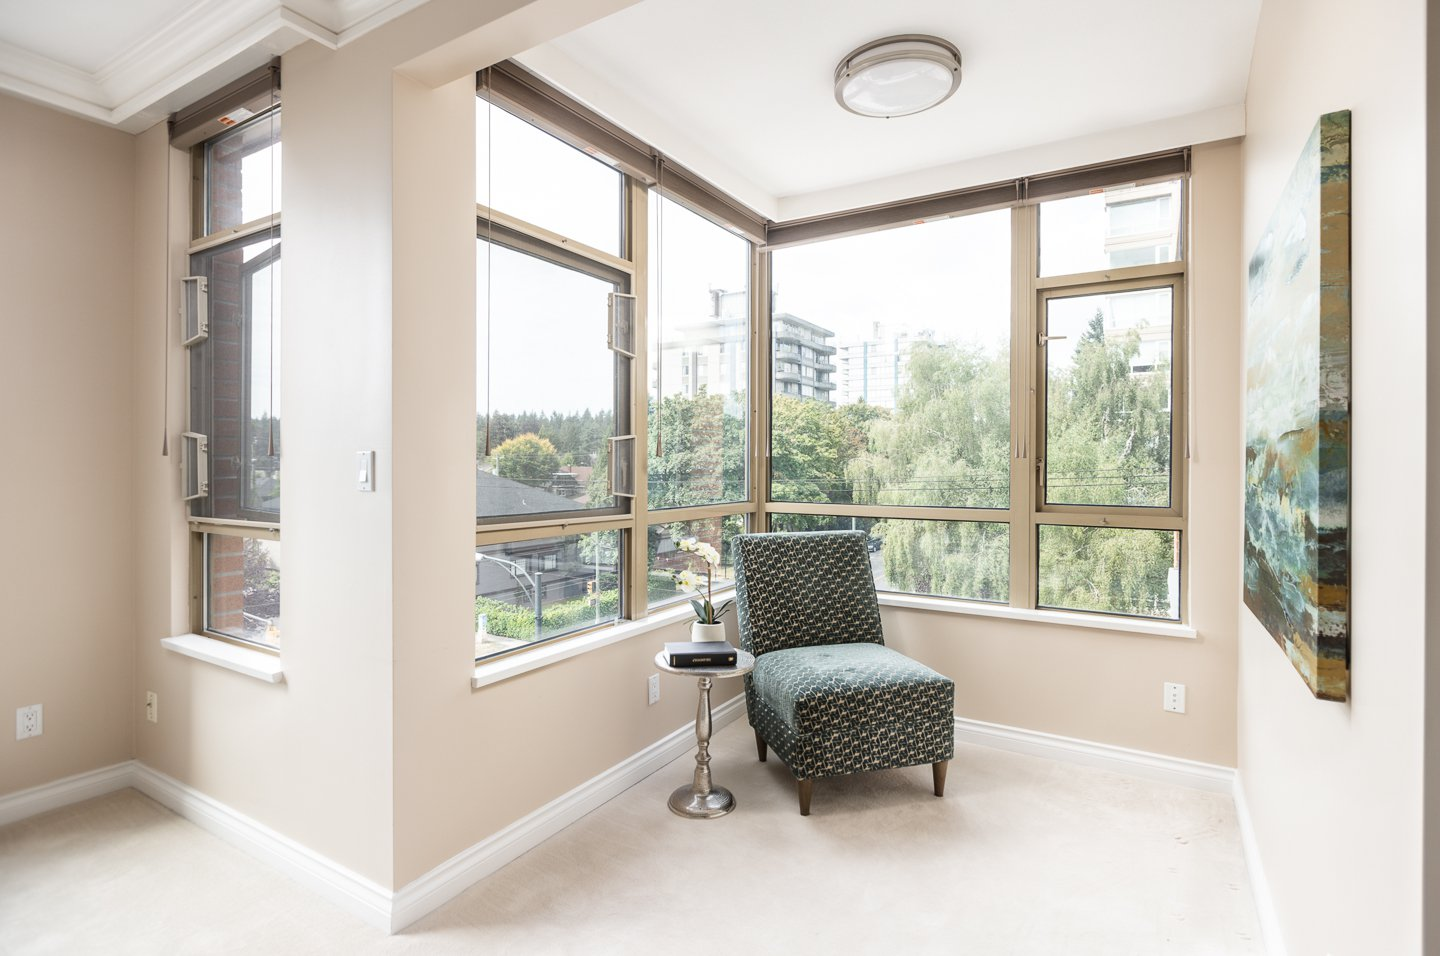 Photo 12: Photos: 401-2580 TOLMIE ST in VANCOUVER: Point Grey Condo for sale (Vancouver West)  : MLS®# R2397003